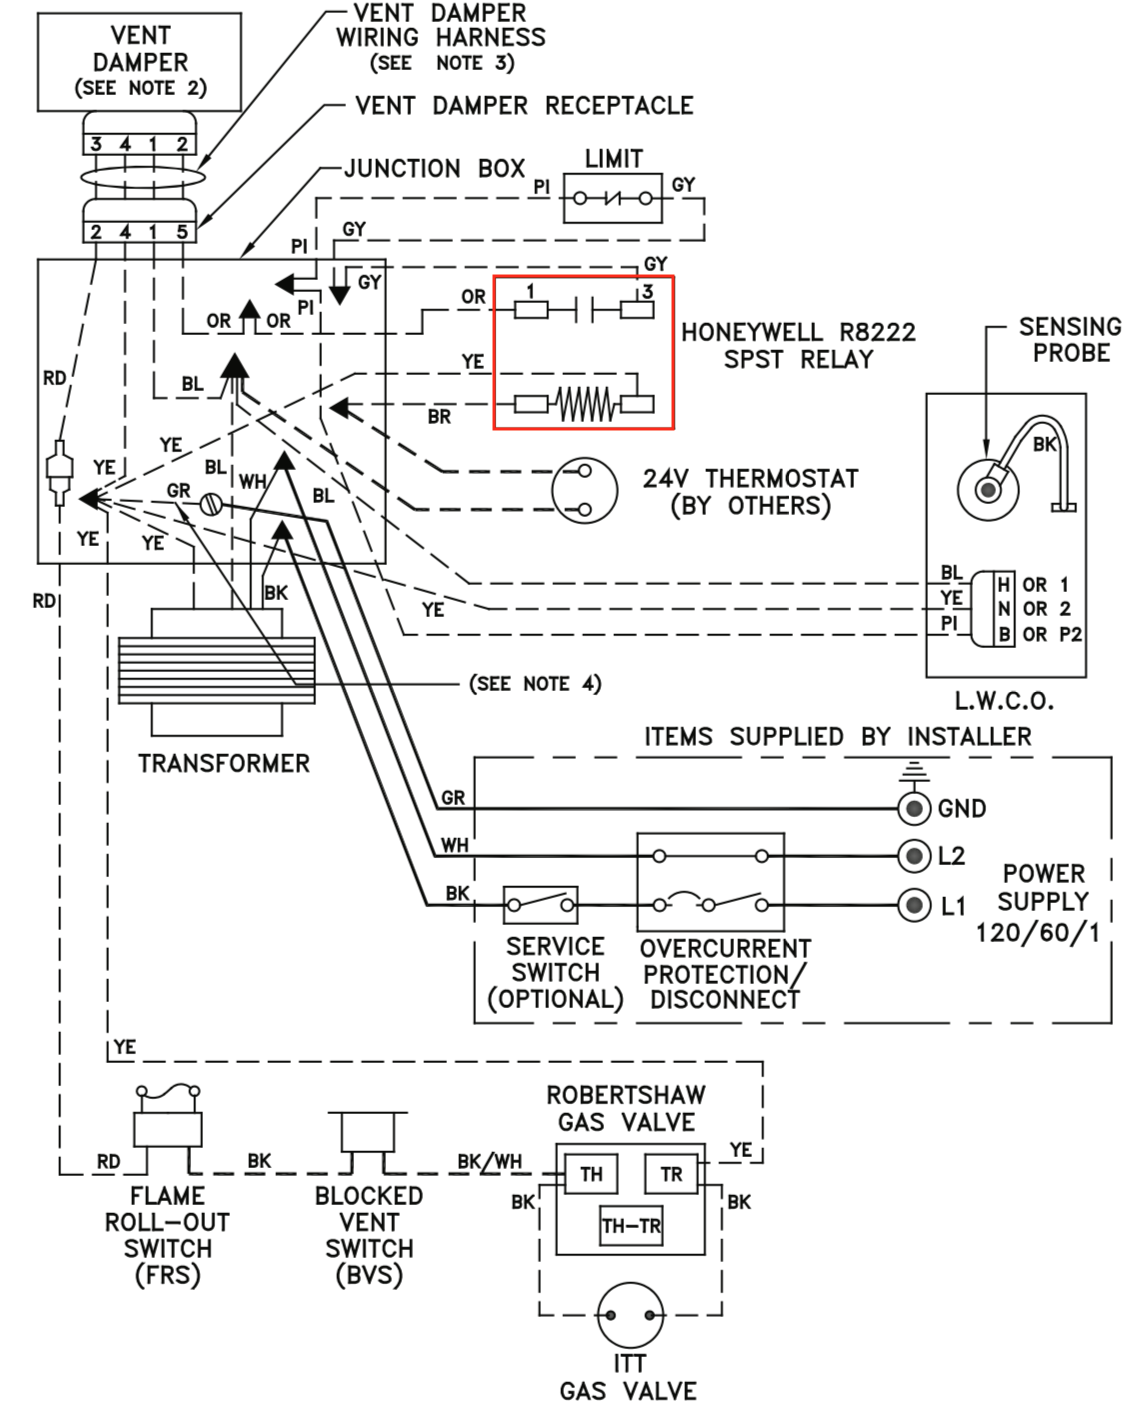 workhorse abs wiring schematic wiring diagrams for flue dampers wiring library  wiring diagrams for flue dampers